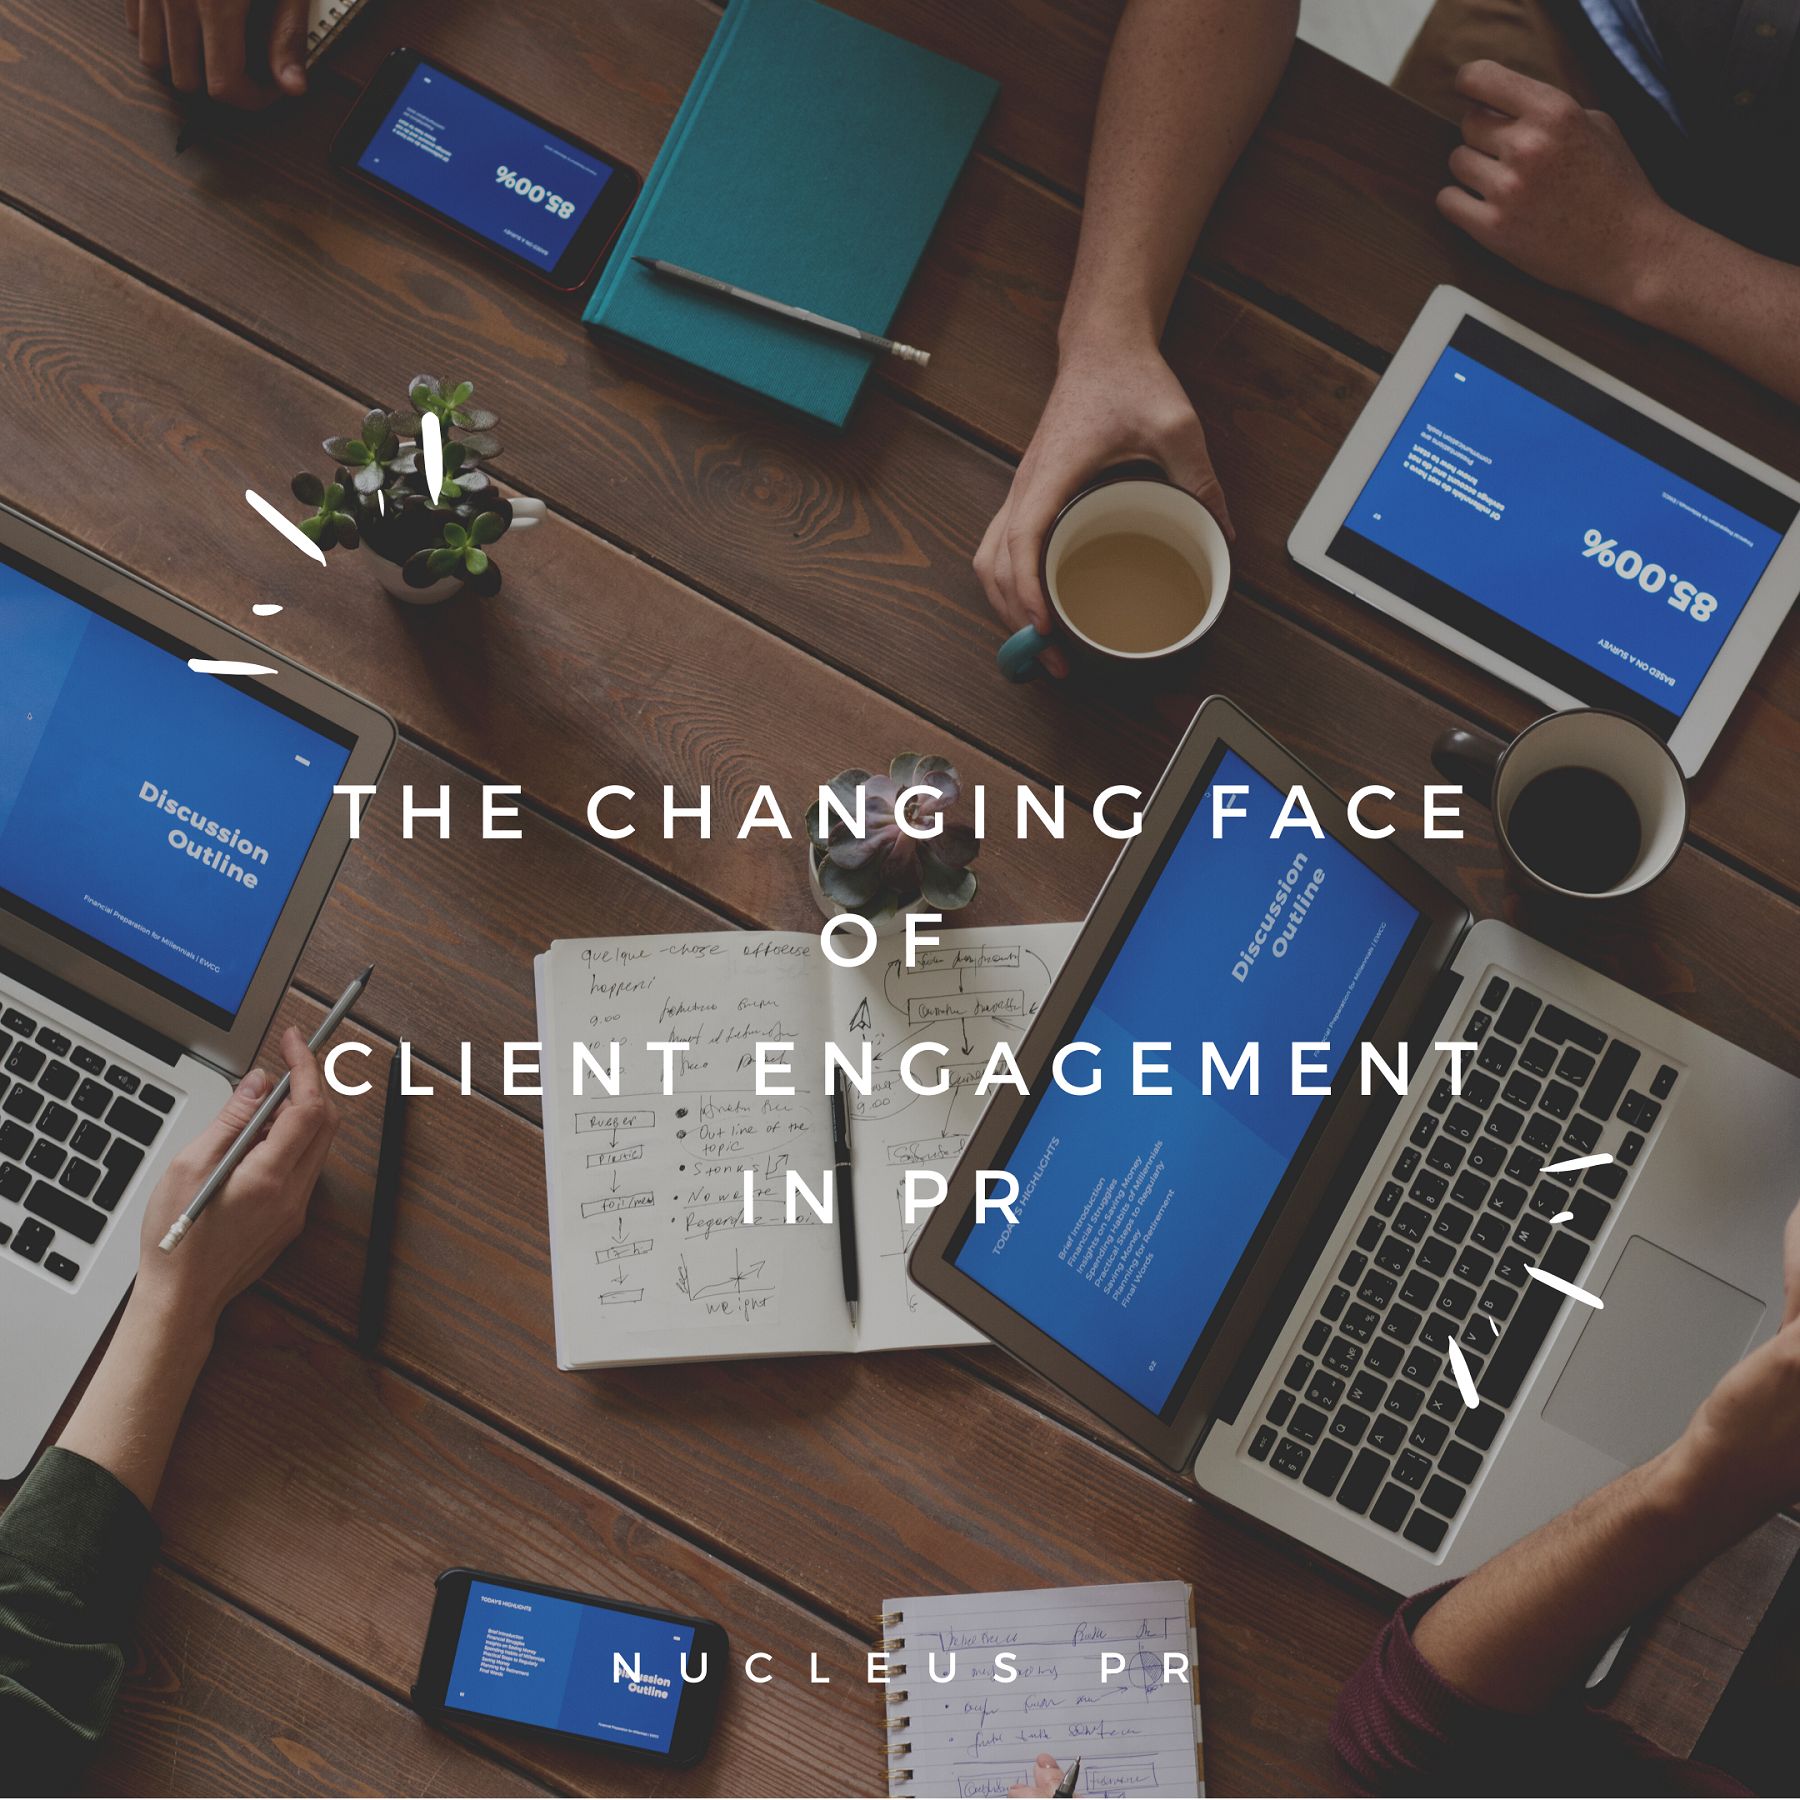 The Changing Face of Client Engagement in PR